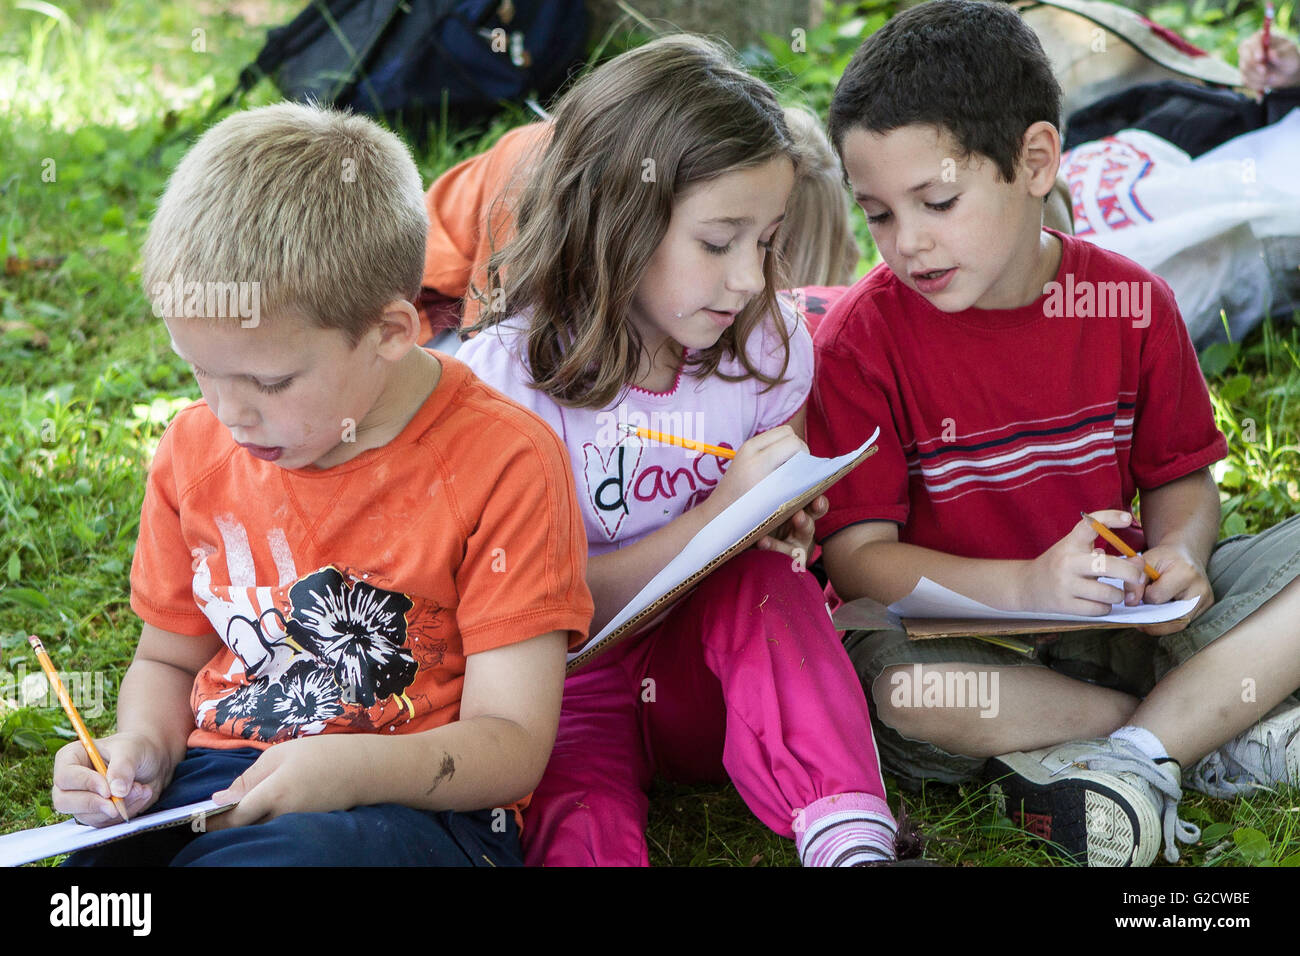 Kids studying together outside - Stock Image